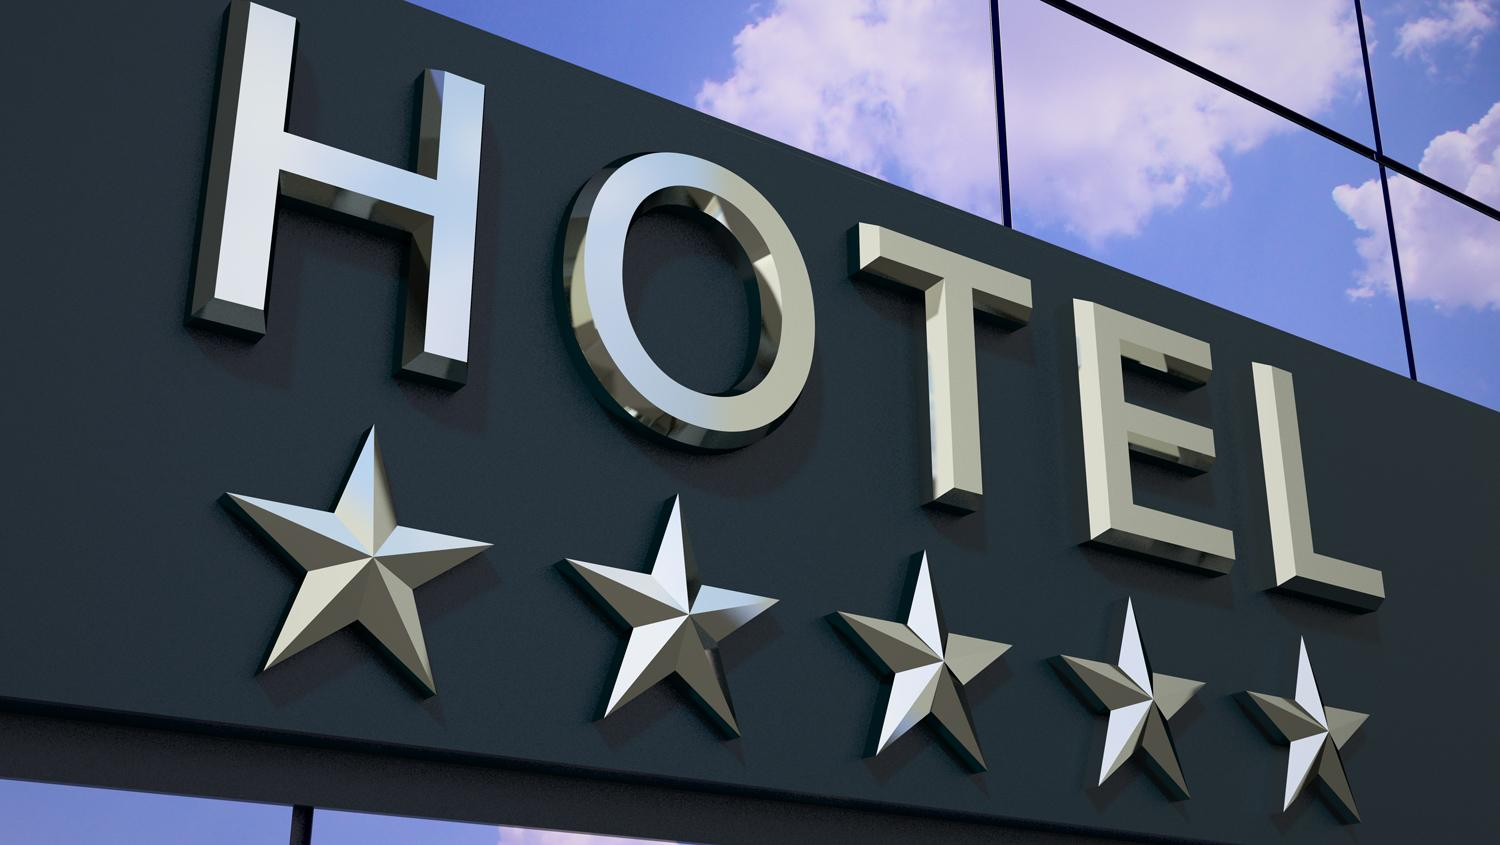 Hotels in Germany are experiencing a record number of bookings.